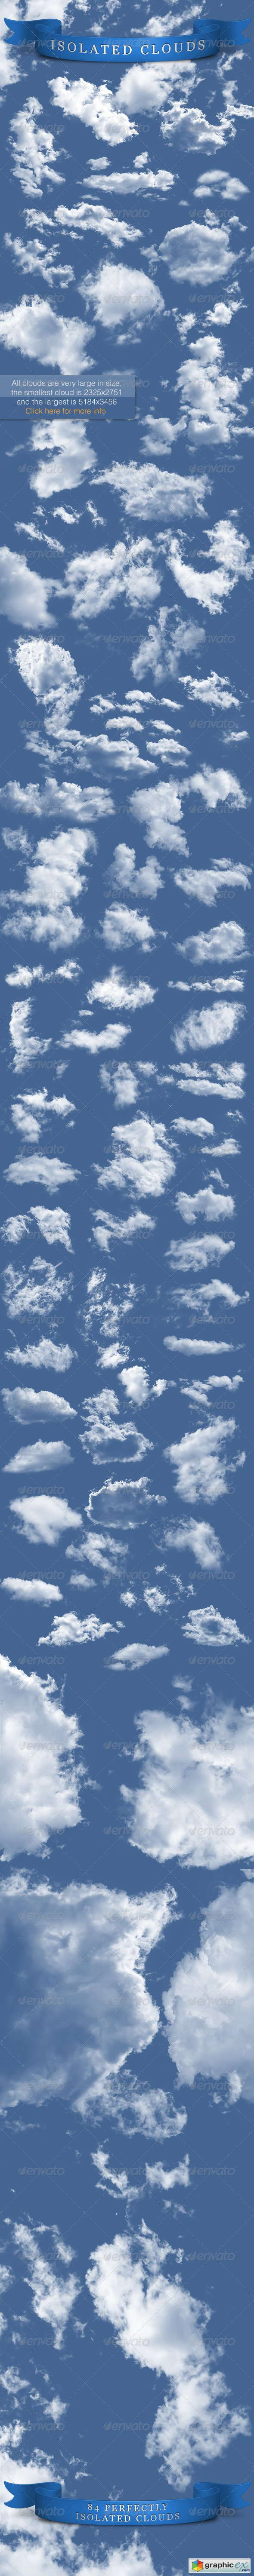 Isolated Clouds Bundle